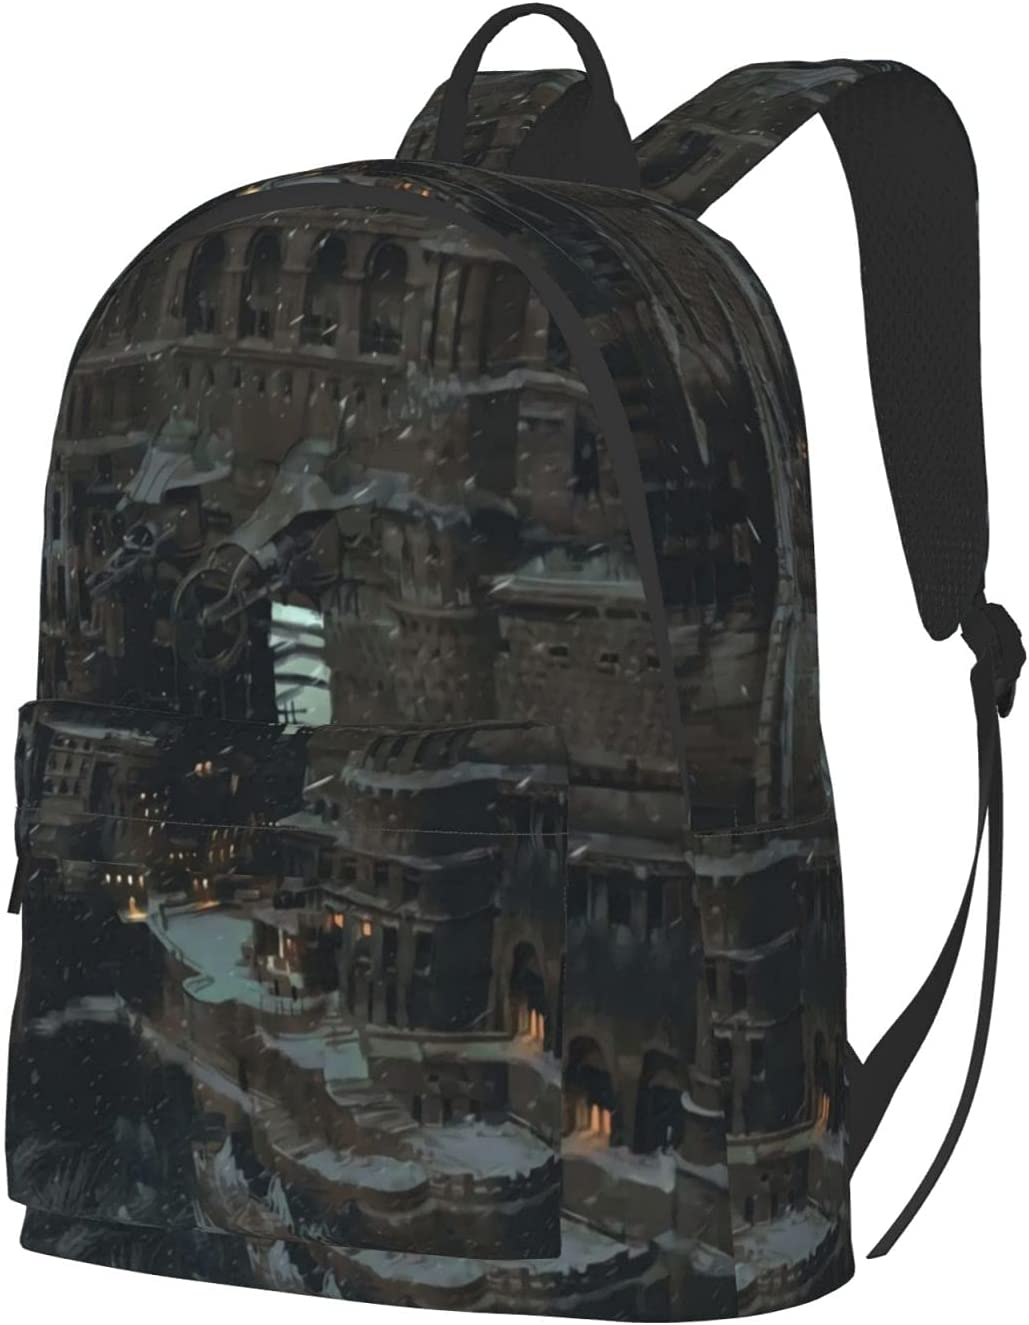 overseas Large Capacity Backpack Water-Resistant Sho Small Purse 67% OFF of fixed price